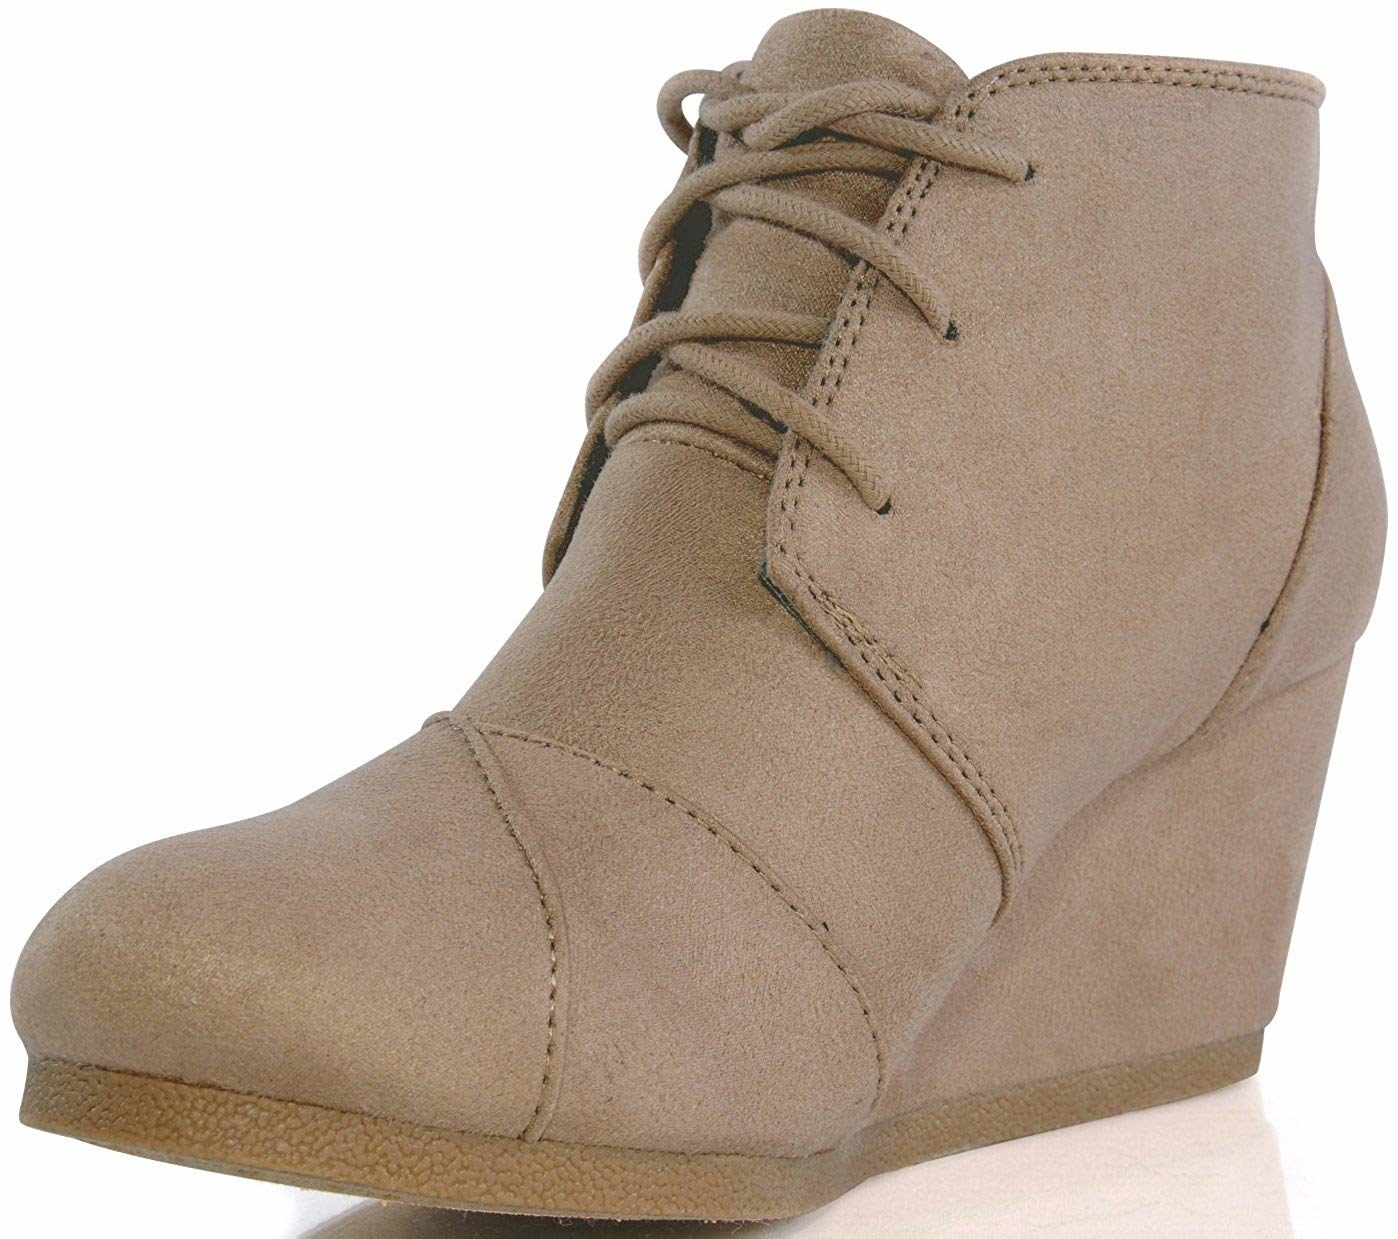 d1ceefc927d78 22 Ankle Boots You Can Get On Amazon That Are Totally Worth It